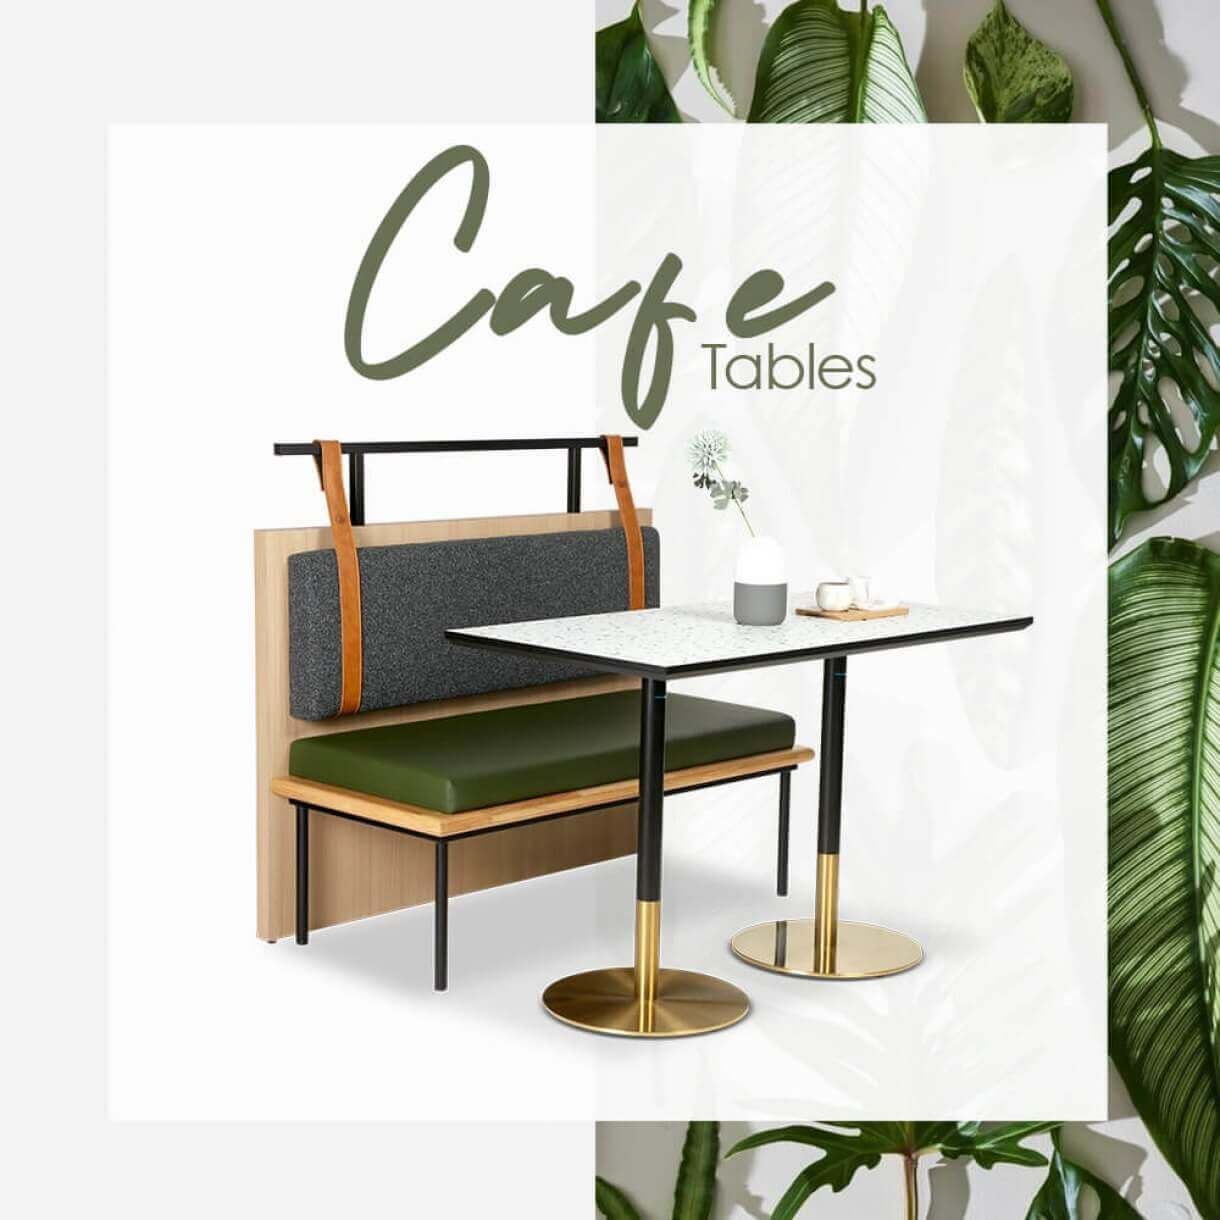 Ideas on Arranging Cafe Tables with Safe Distance - Comfort Furniture